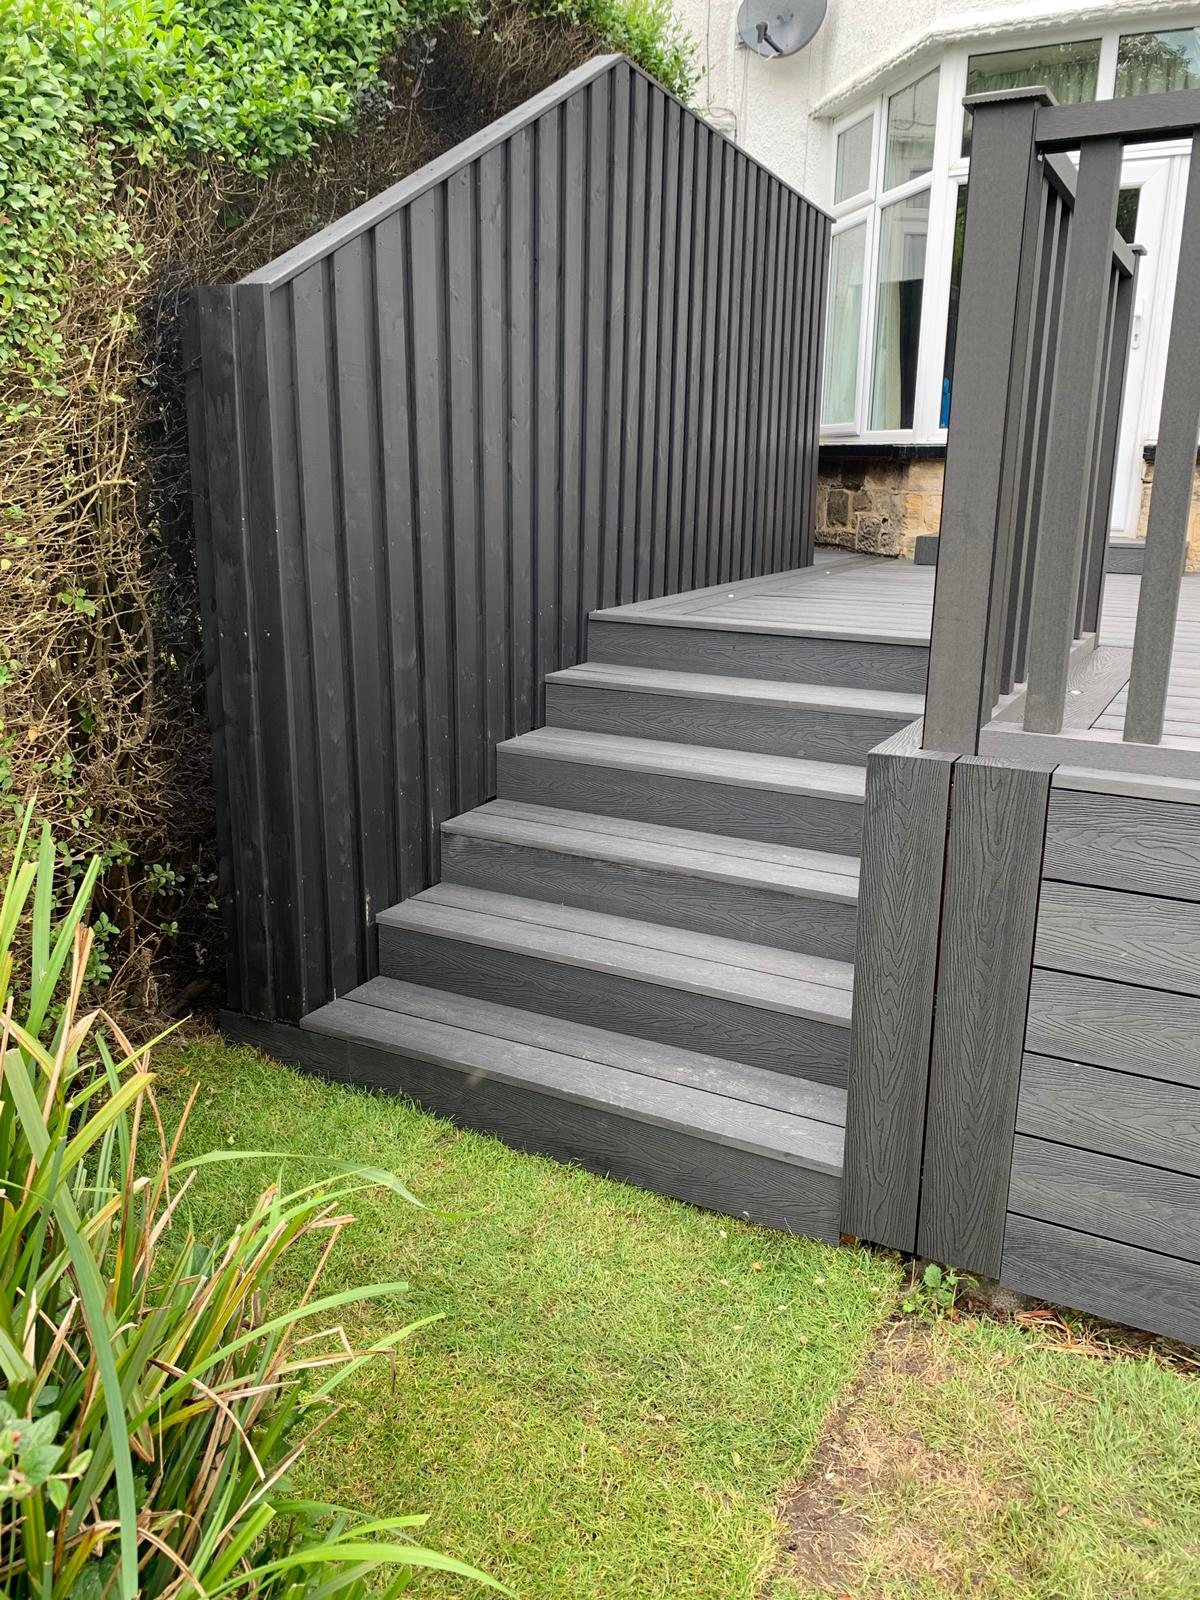 Heritage Dark Charcoal Deep Embossed Composite Decking with Composite Handrails and LED Lighting